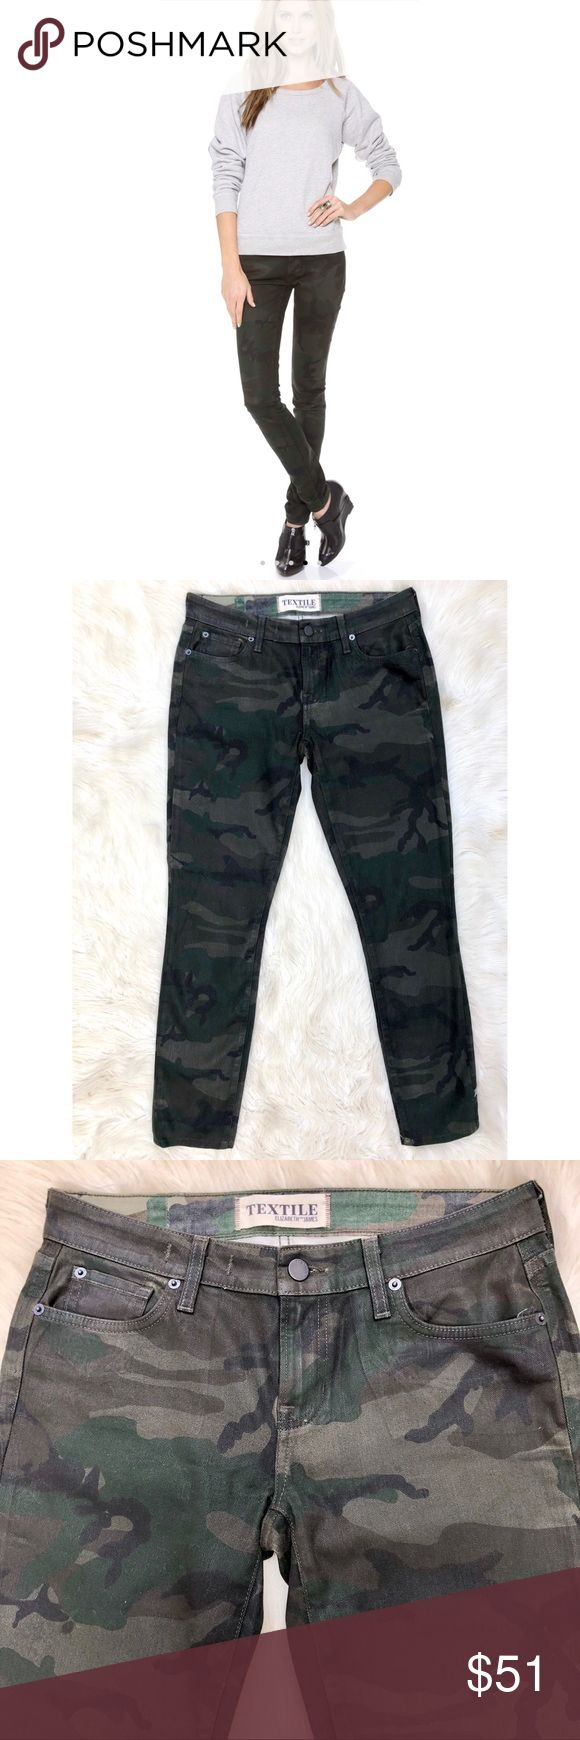 """Elizabeth and James Textile Debbie Camo Jeans TEXTILE Elizabeth and James Coated Debbie Skinny Jeans  Camouflage print lends a roguish feel to these faded, TEXTILE Elizabeth and James skinny jeans. 5-pocket styling. Single-button closure and zip fly.  Fabric: Coated stretch denim. 98% cotton/2% elastane. Dry clean.  These are in excellent condition with no flaws. They're coated but not really shiny, so it's easier to wear for everyday outfits.   Size 27 28"""" inseam  8"""" rise 15"""" waist 11"""" leg…"""